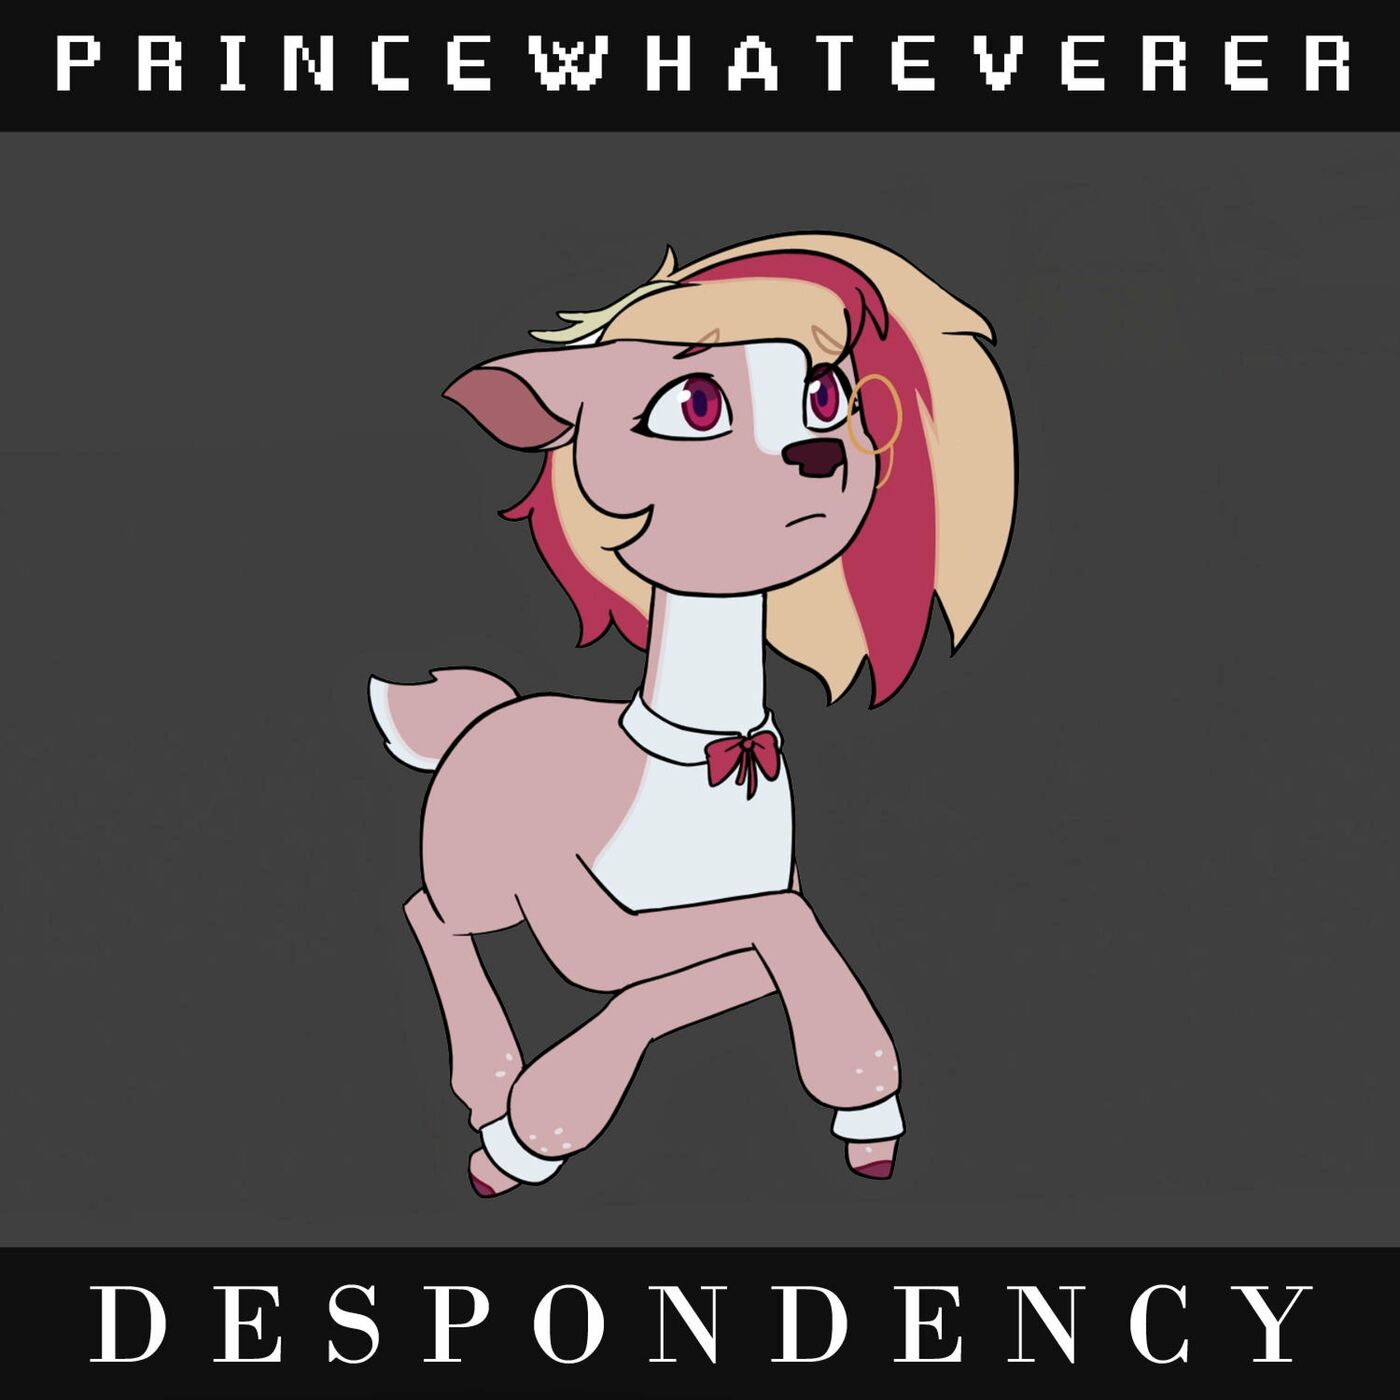 PrinceWhateverer - Despondency [single] (2020)